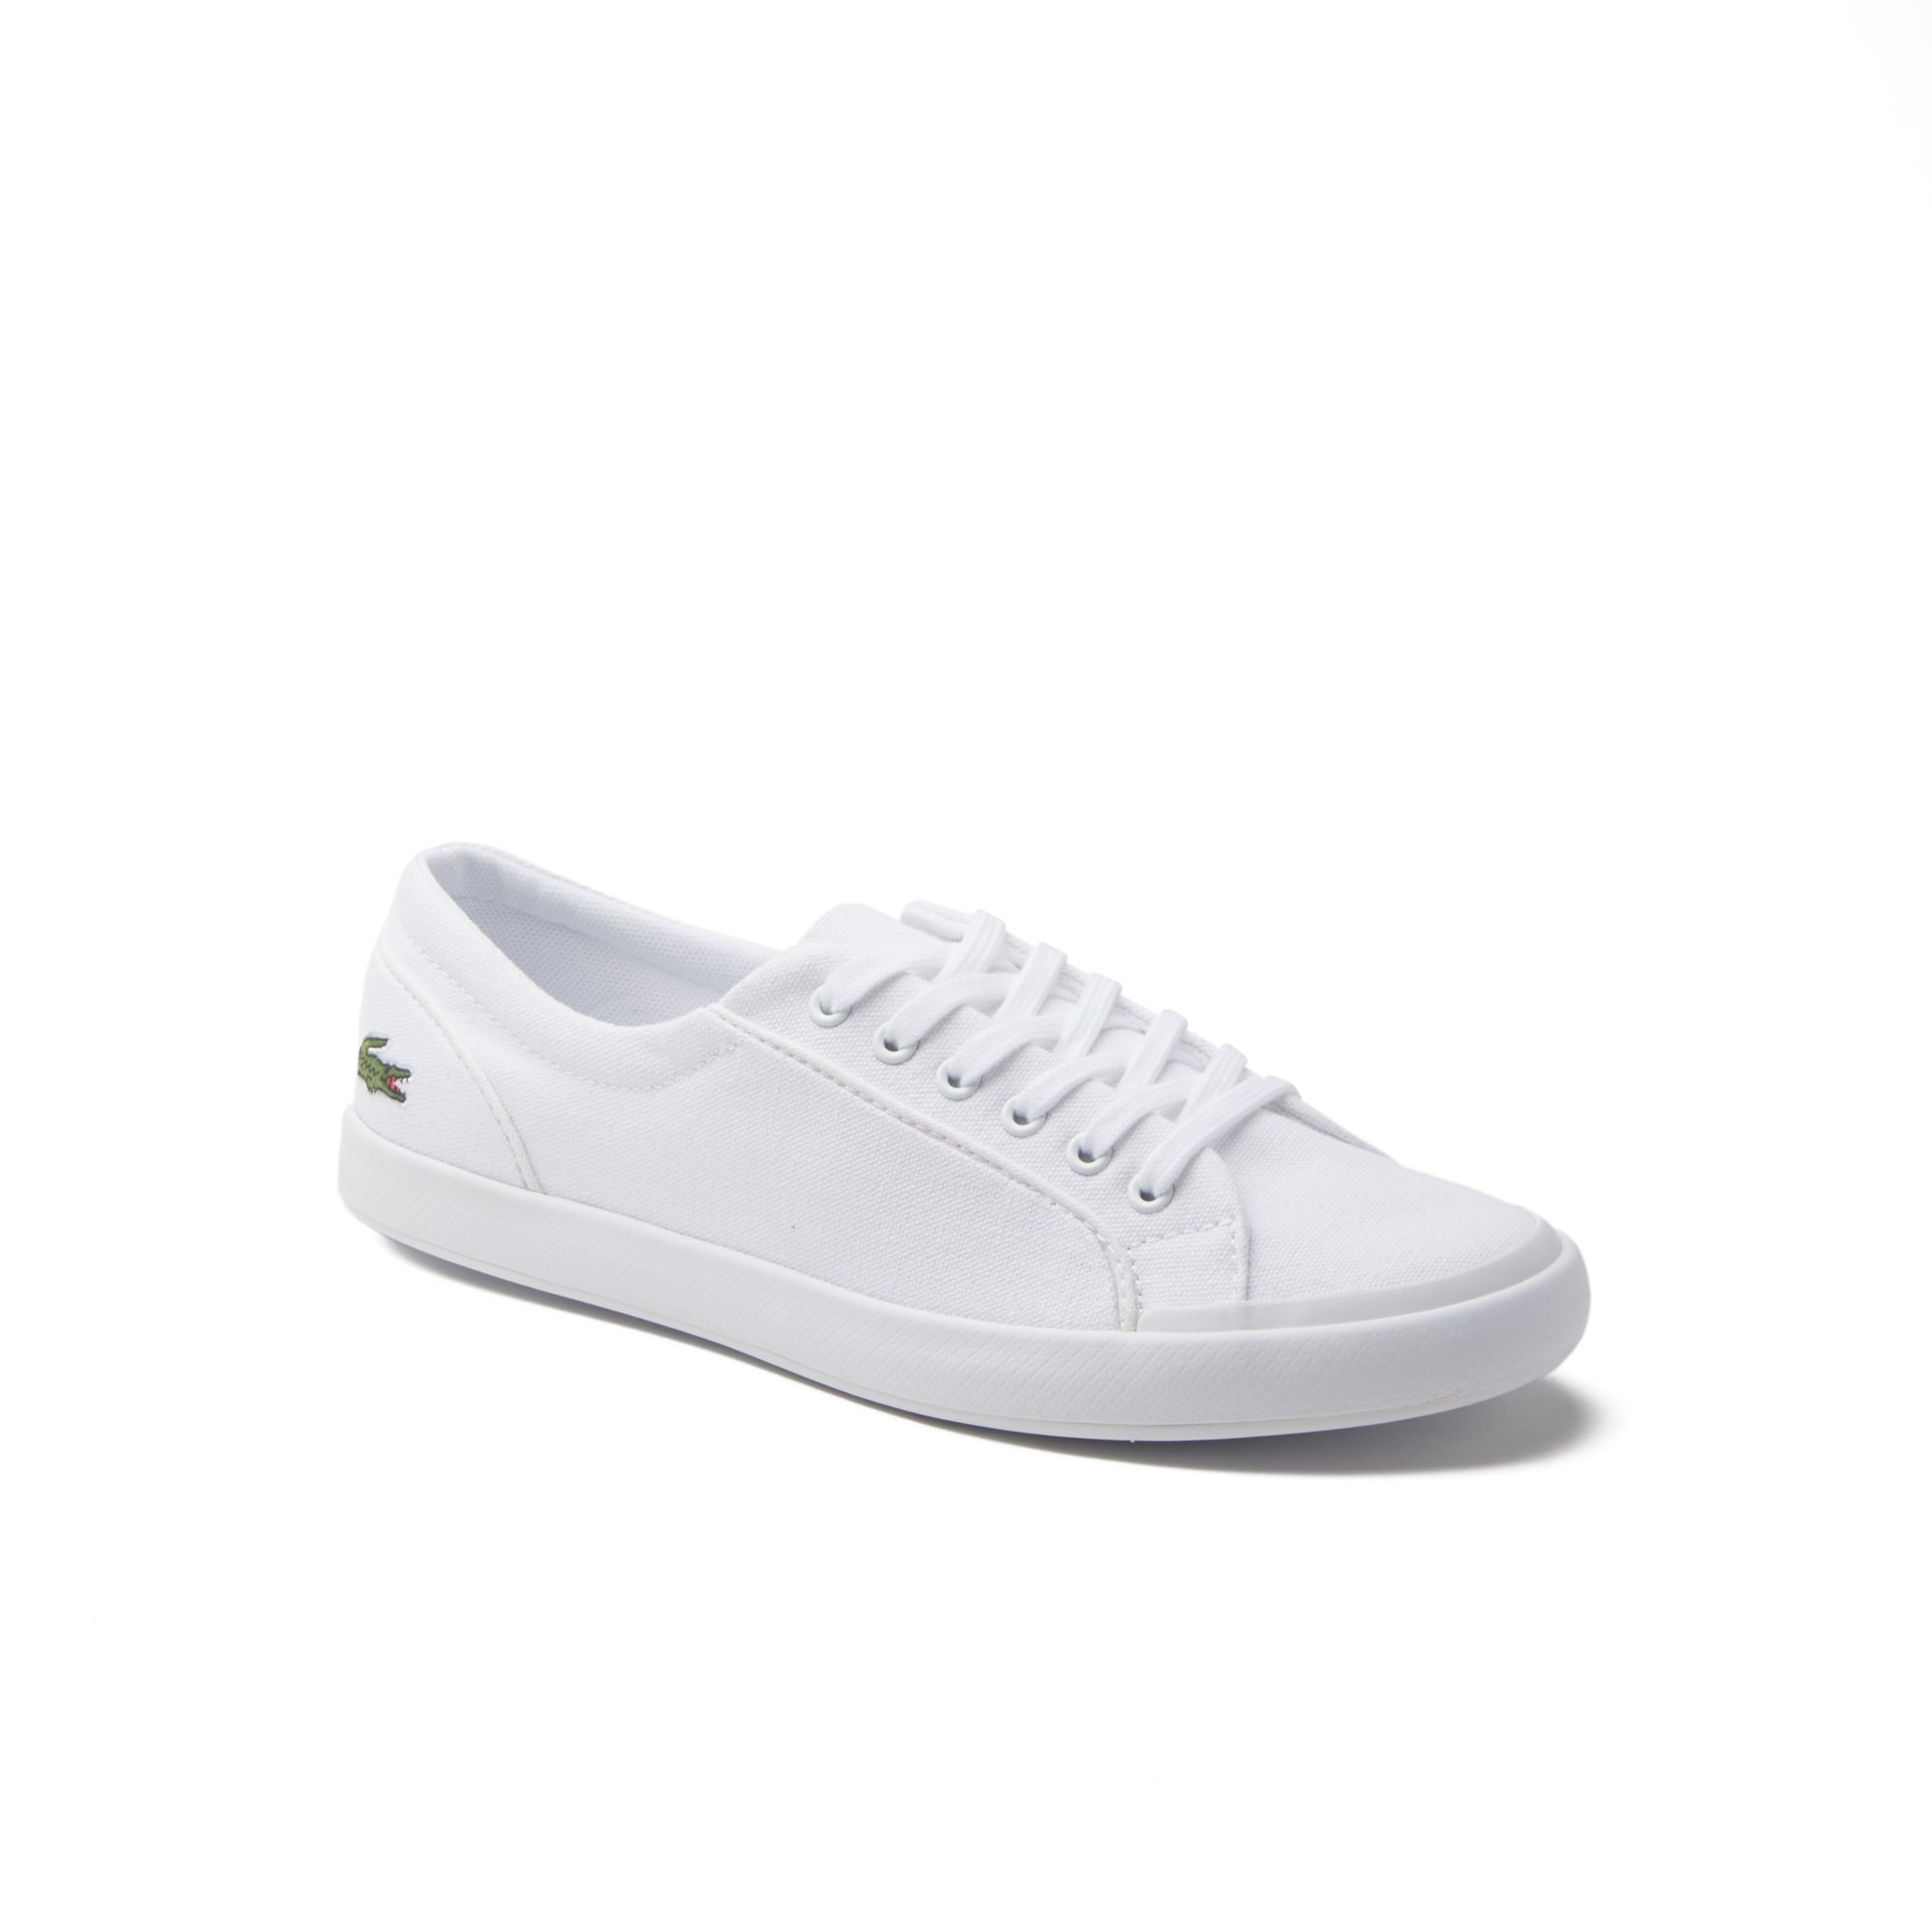 025e6e27bf66 Women s Lancelle BL Canvas Sneakers